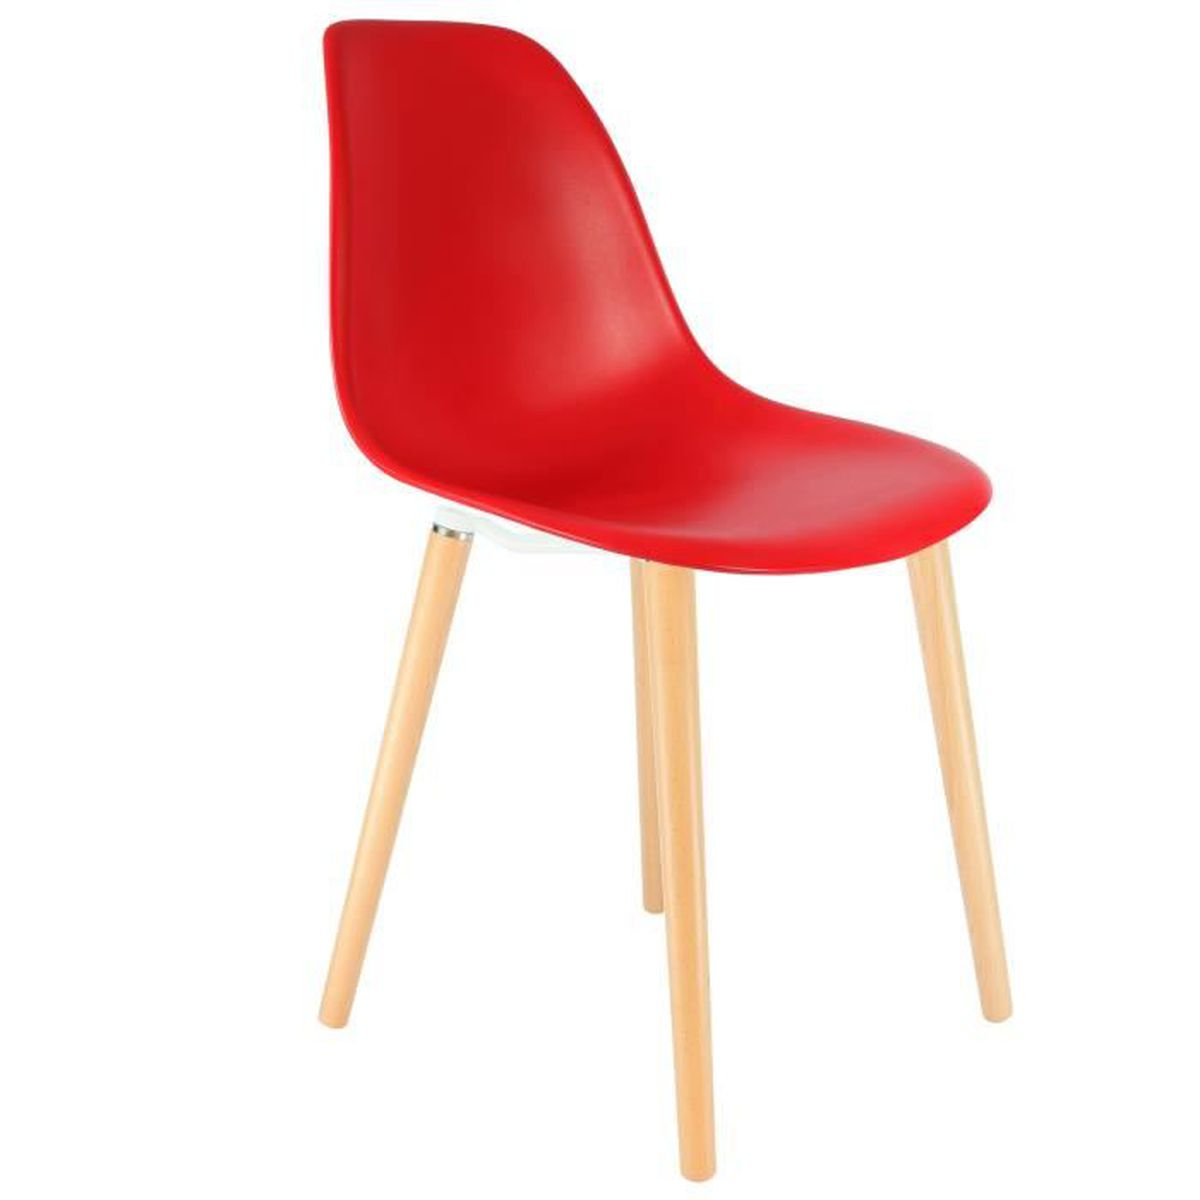 Chaise privee chaise stw rouge naturel achat vente chaise sold - Cdiscount vente privee ...